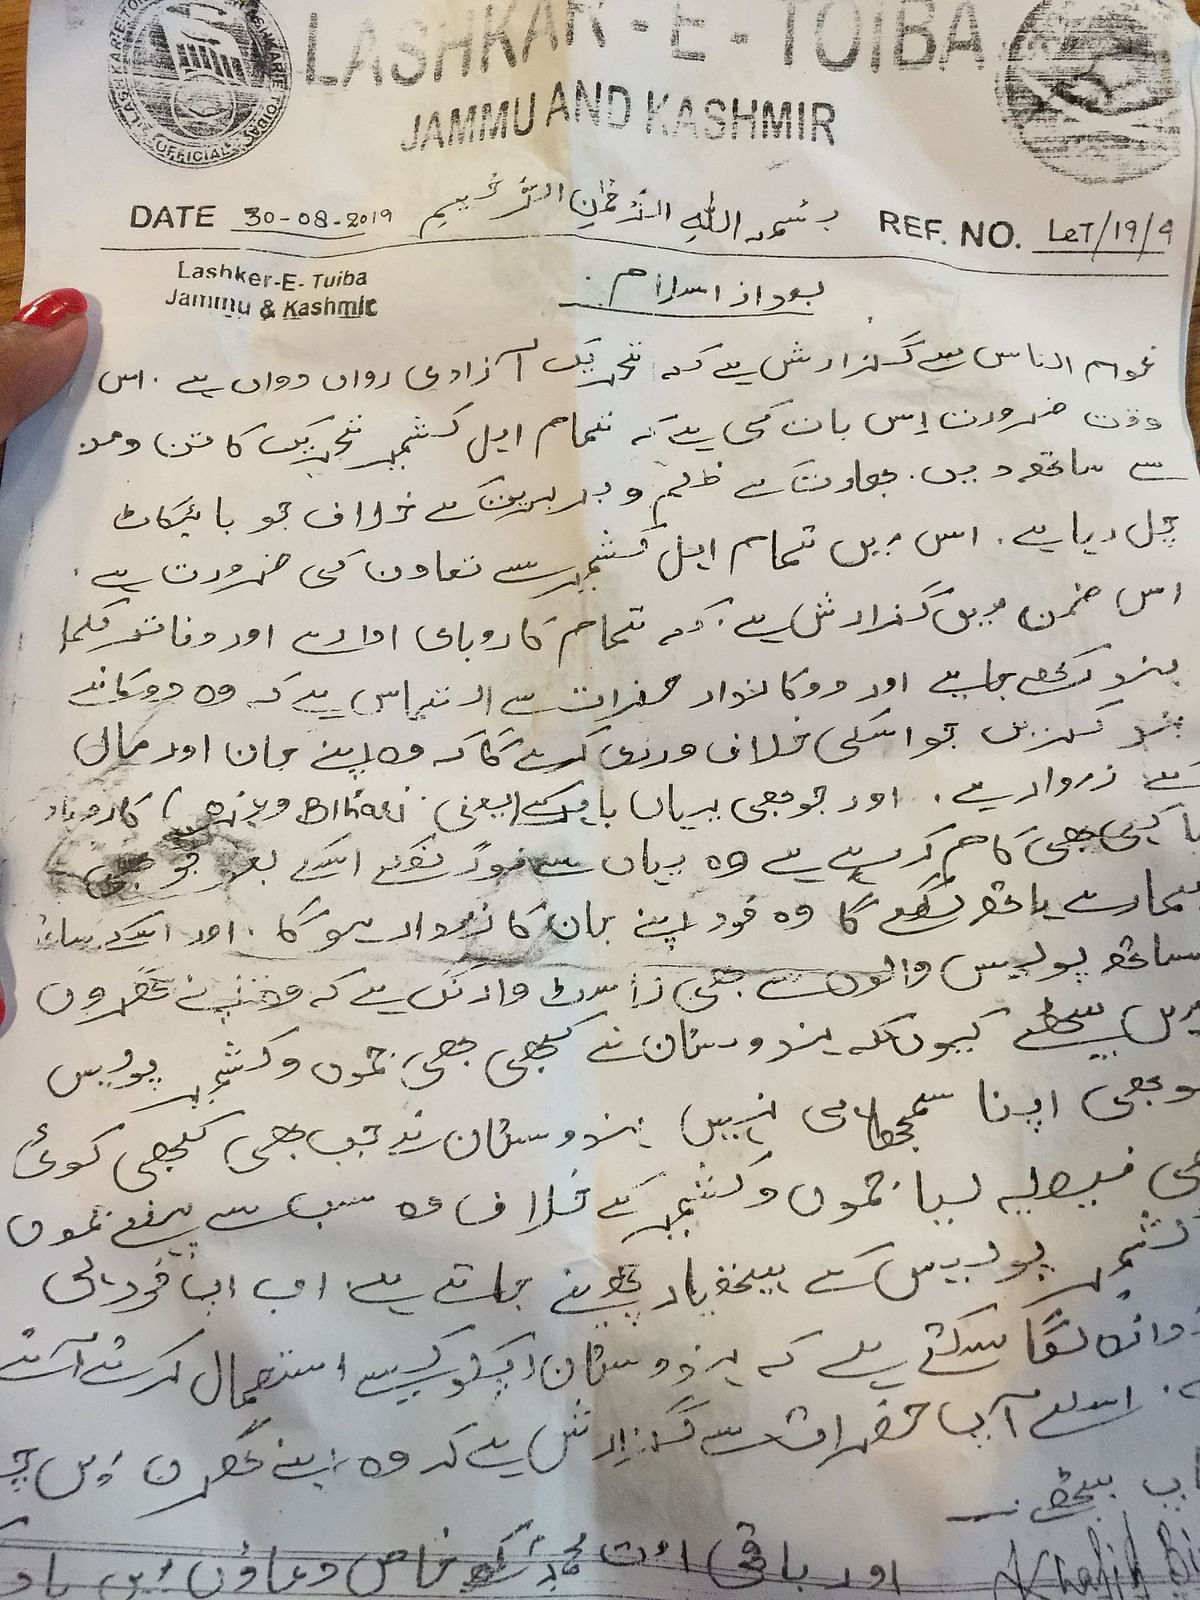 Lashkar-e-Taiba letter warning apple orchards, workers, and shop owners.